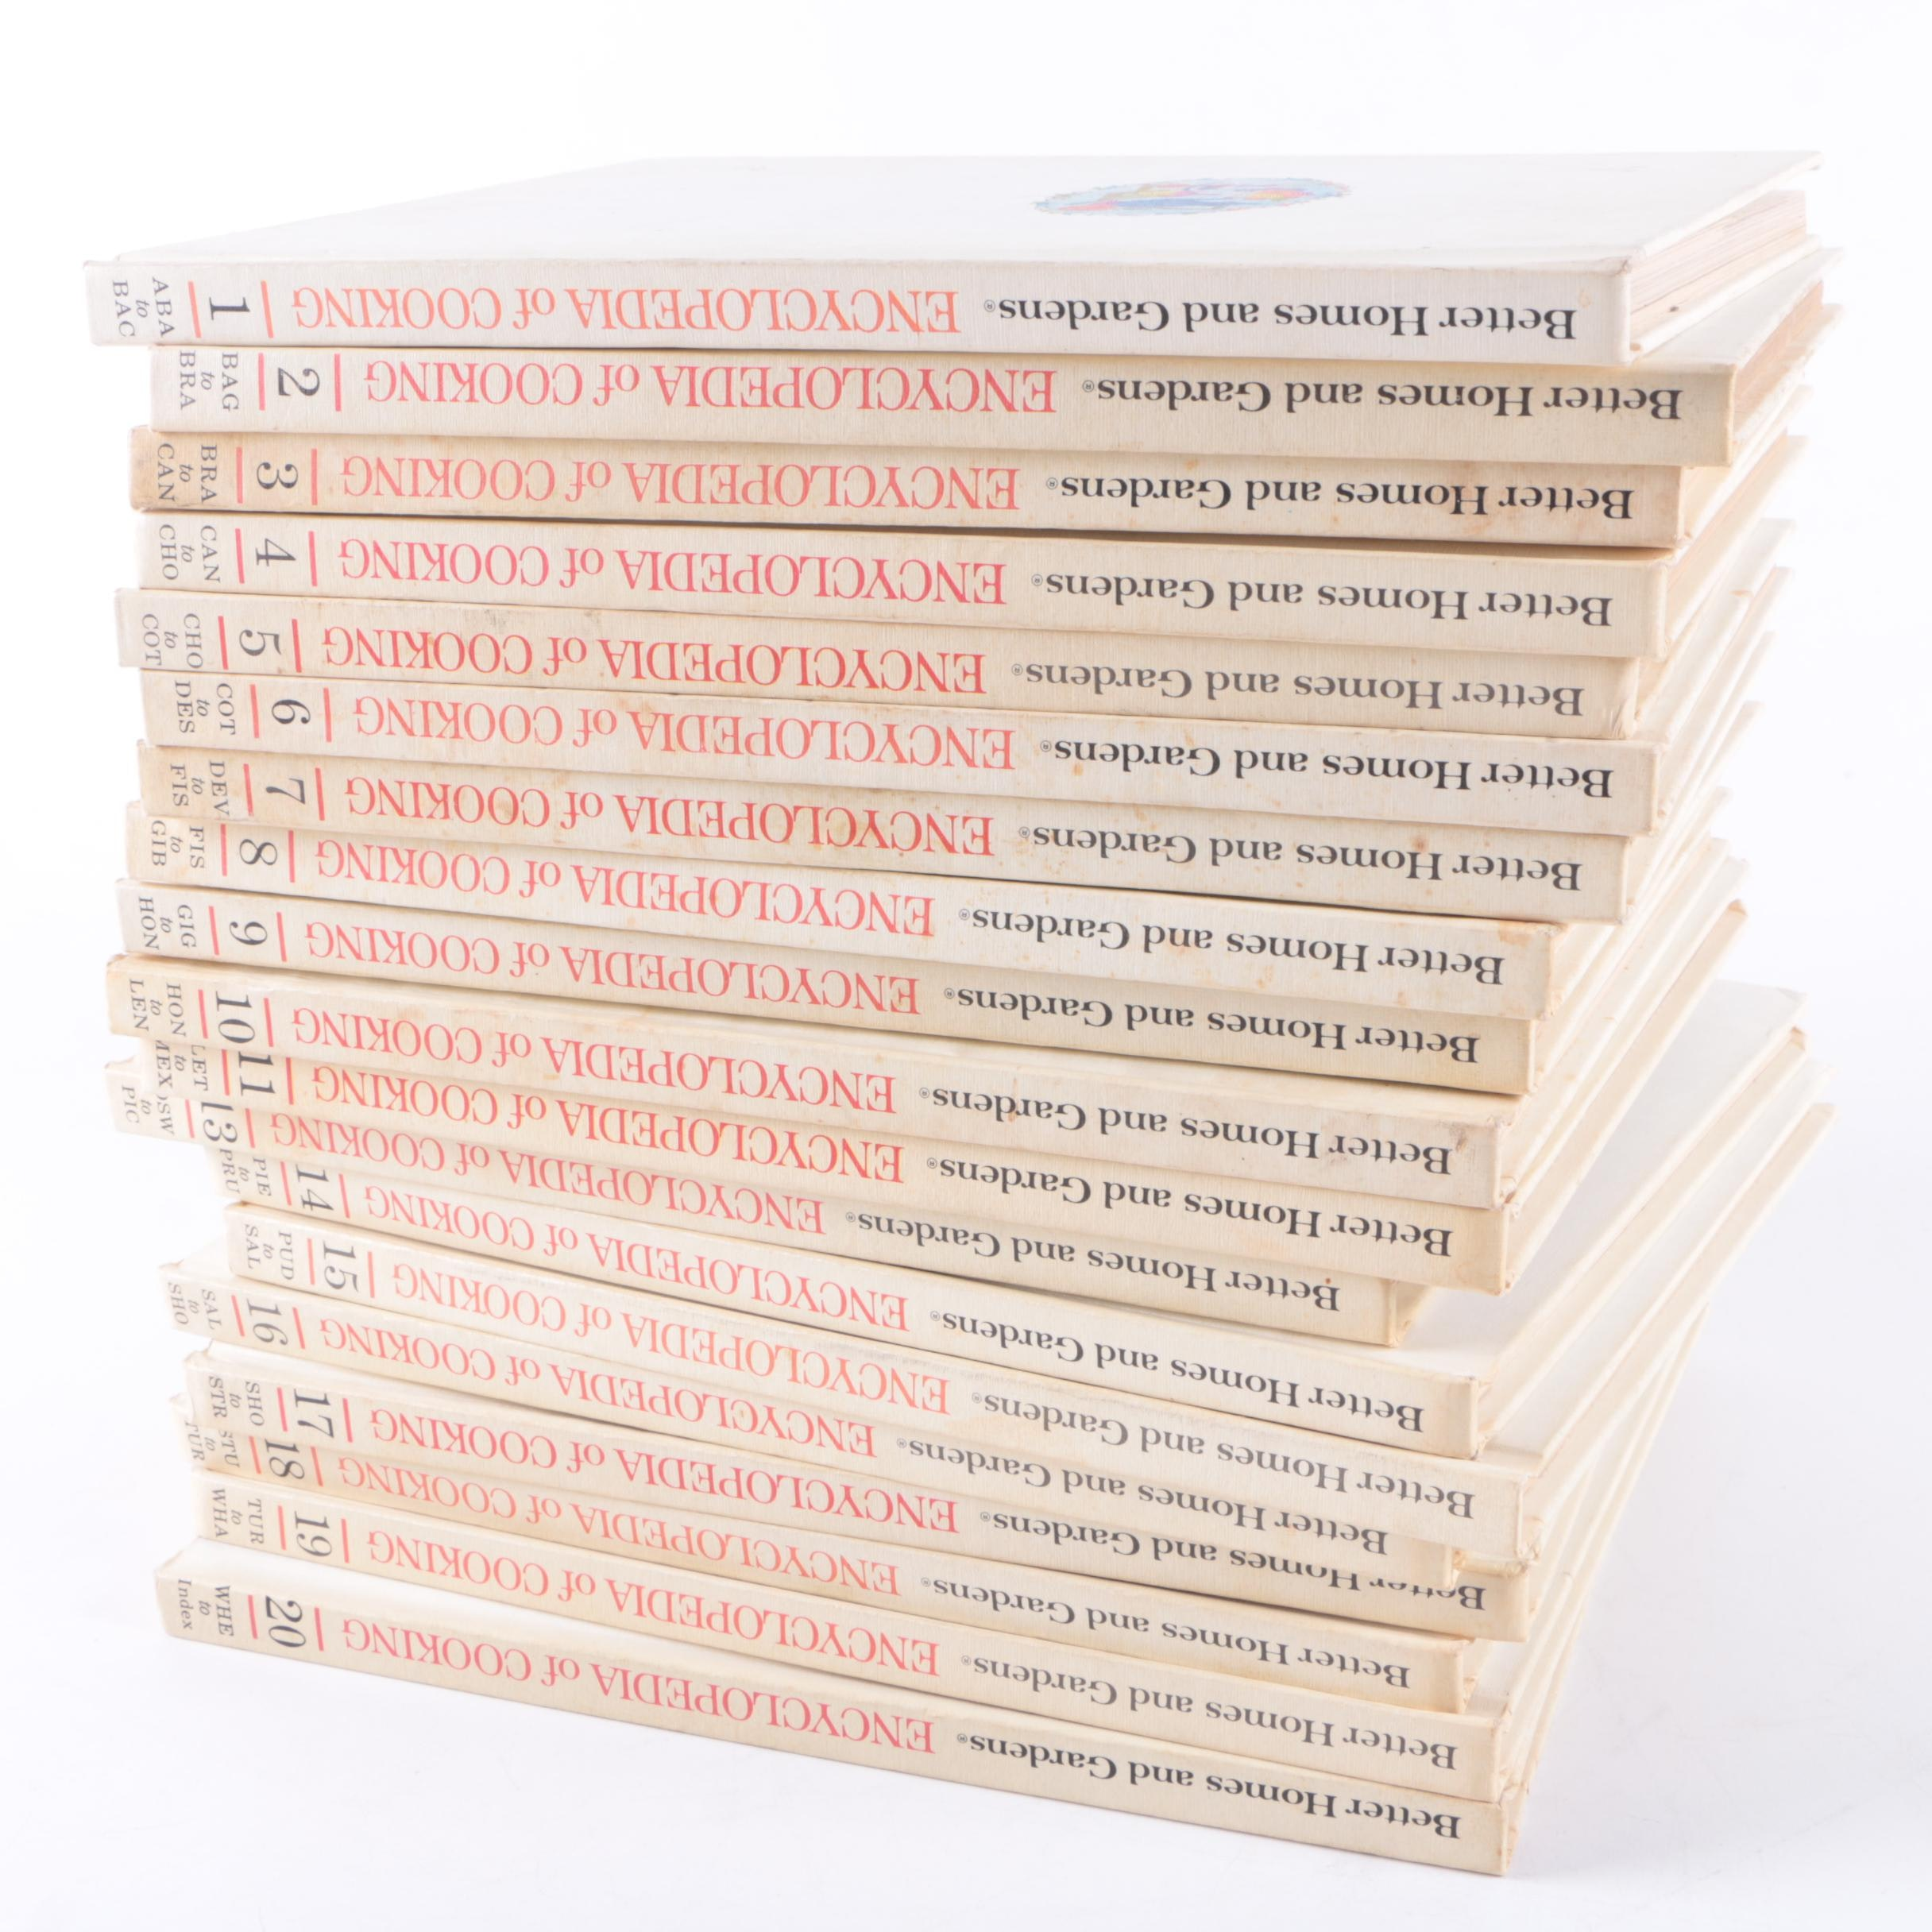 """""""Better Homes and Gardens Encyclopedia of Cooking"""" Multi-Volume Set"""